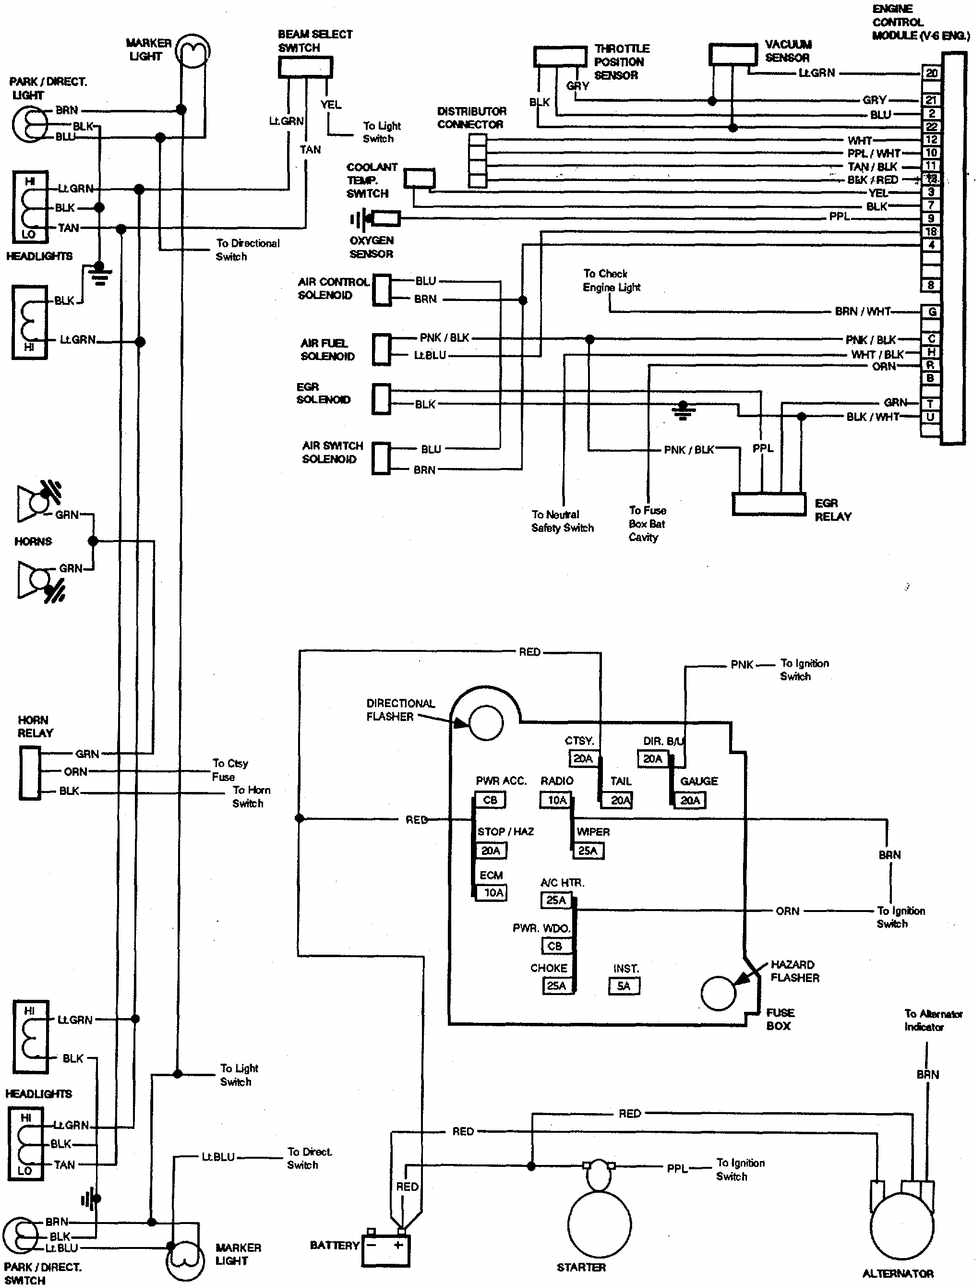 93 Gmc Sierra Radio Wiring Diagram further 2003 Dodge Ram Wiring Diagram additionally 2003 Dodge Neon Map Sensor Location Motorcycle And Car Engine Scheme also 2004 Chevy Astro Van Fuel Tank furthermore 1989 Suzuki Swift Gti Air Conditioner Wiring Diagram And Electrical Schematic. on 2002 dodge ram 1500 car stereo wiring diagram